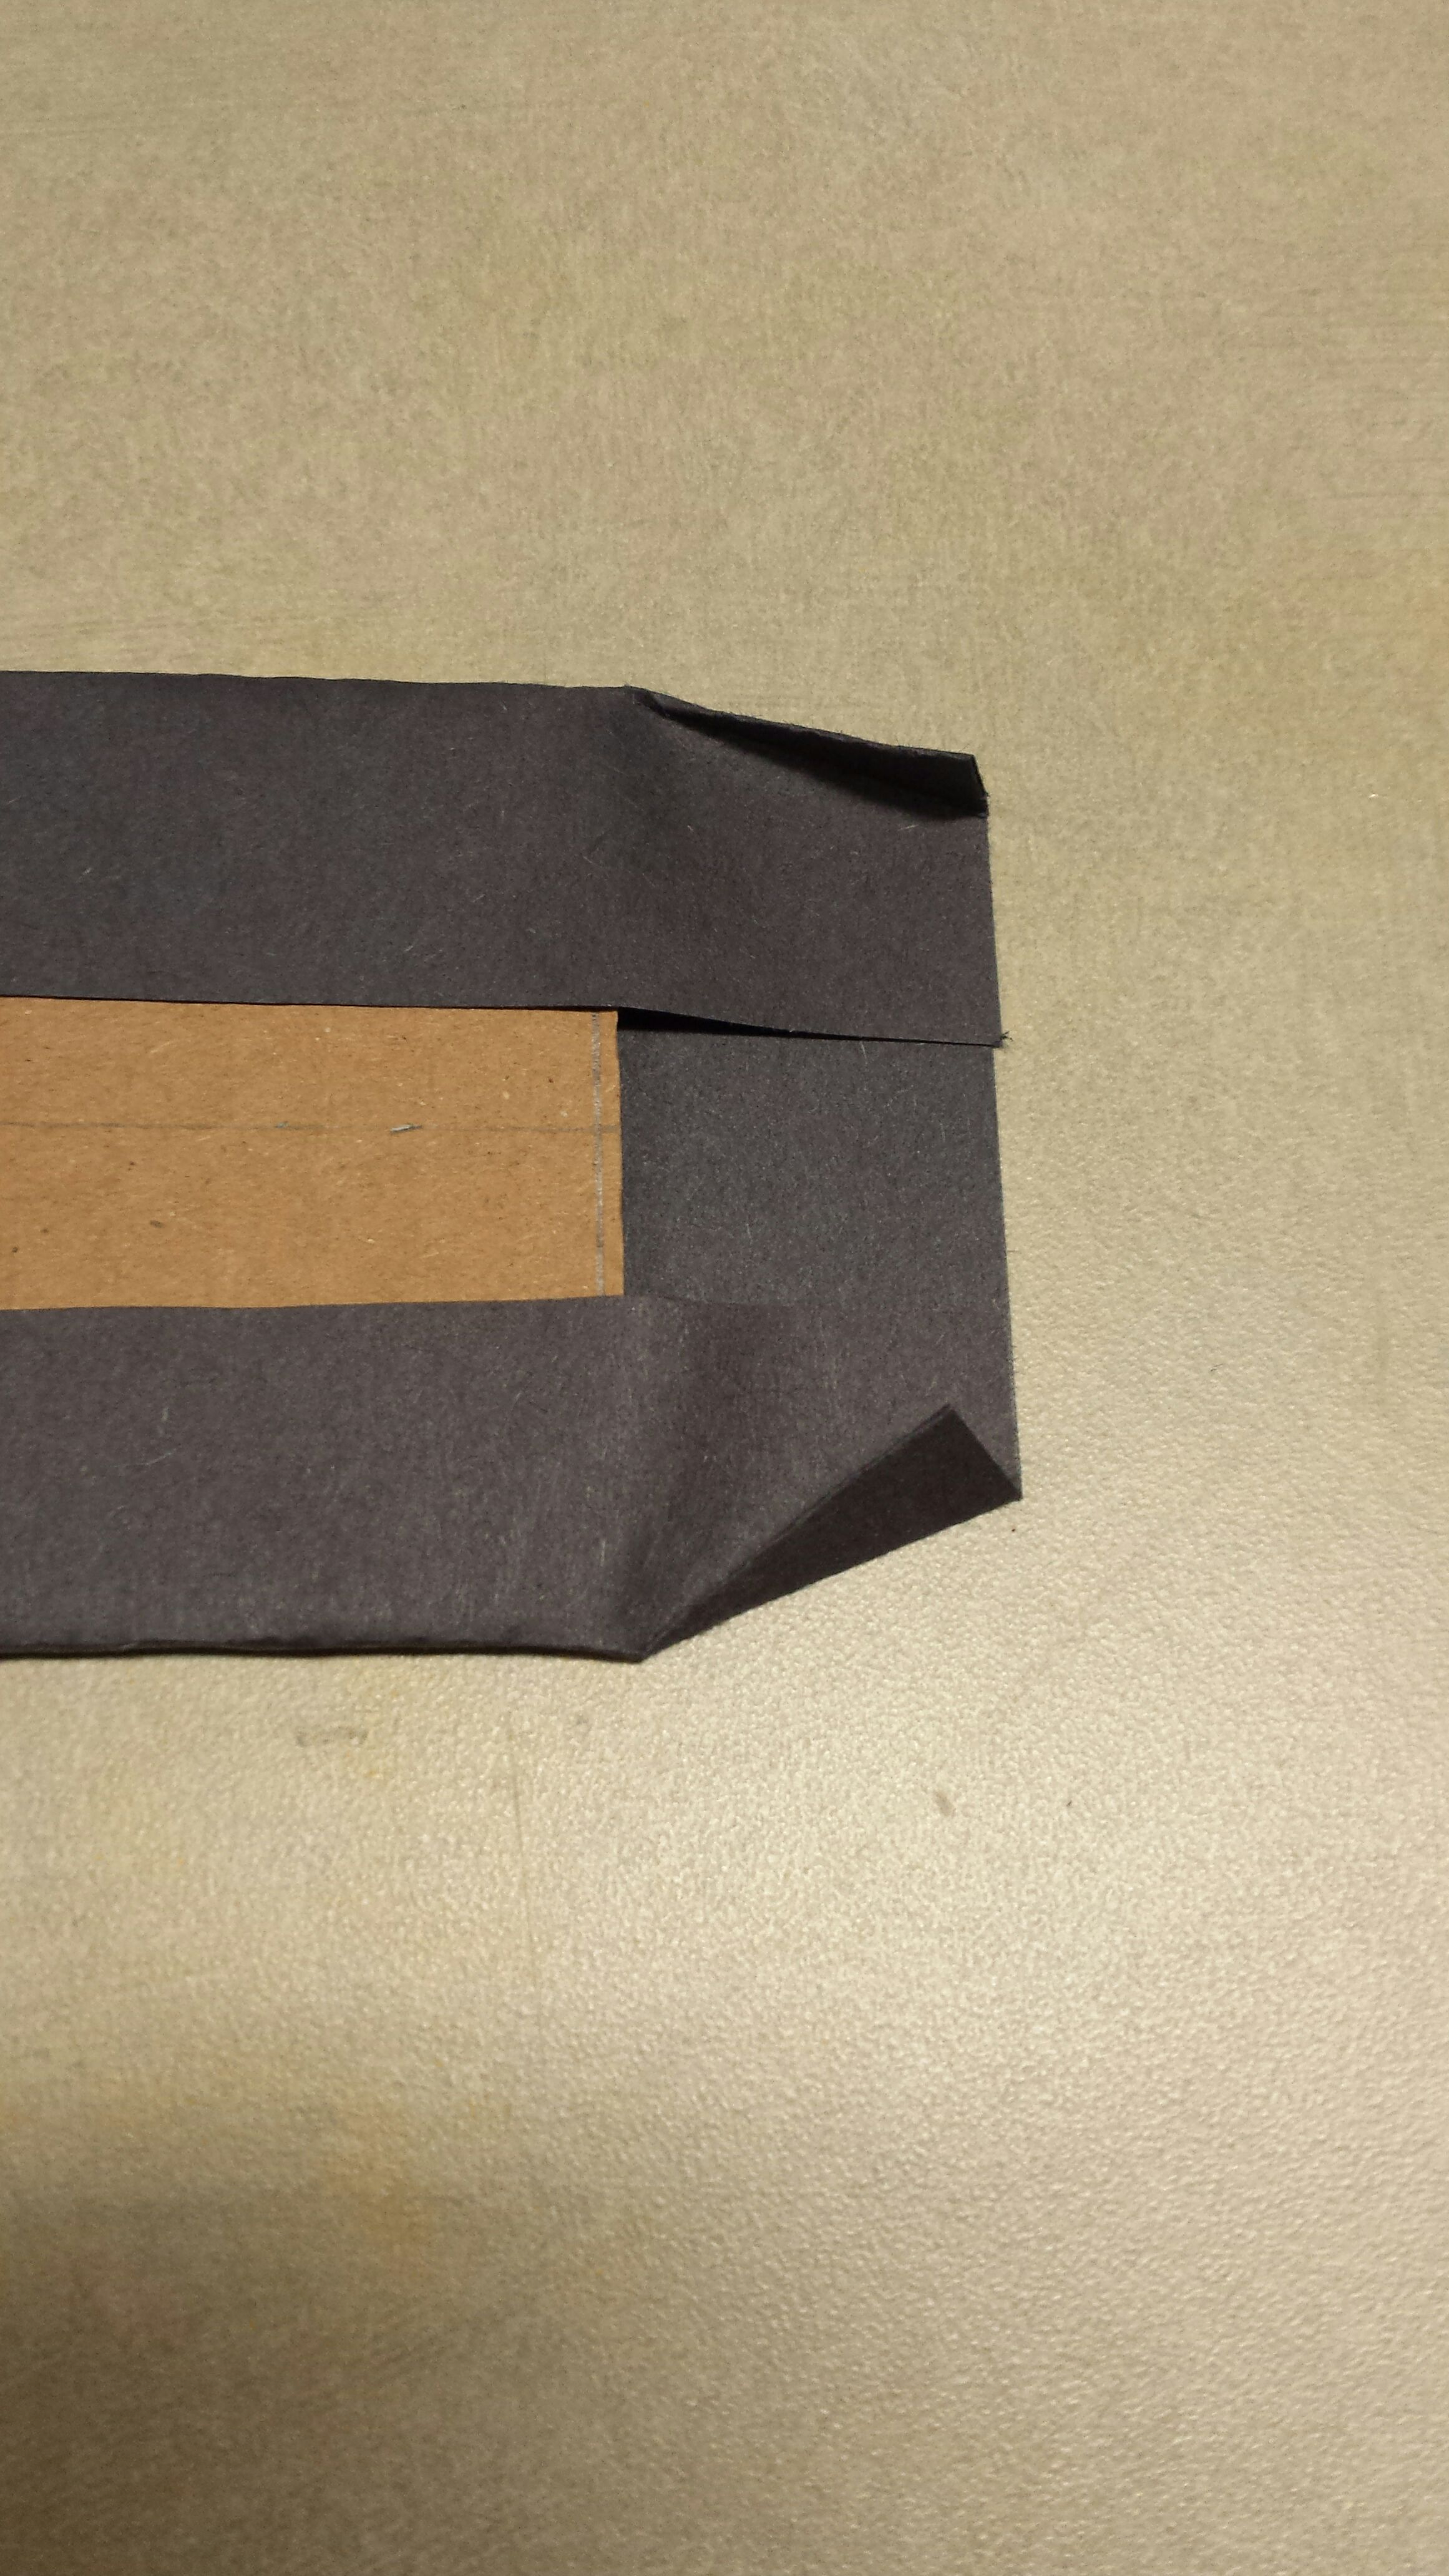 Picture of LEDs: Cardboard Support